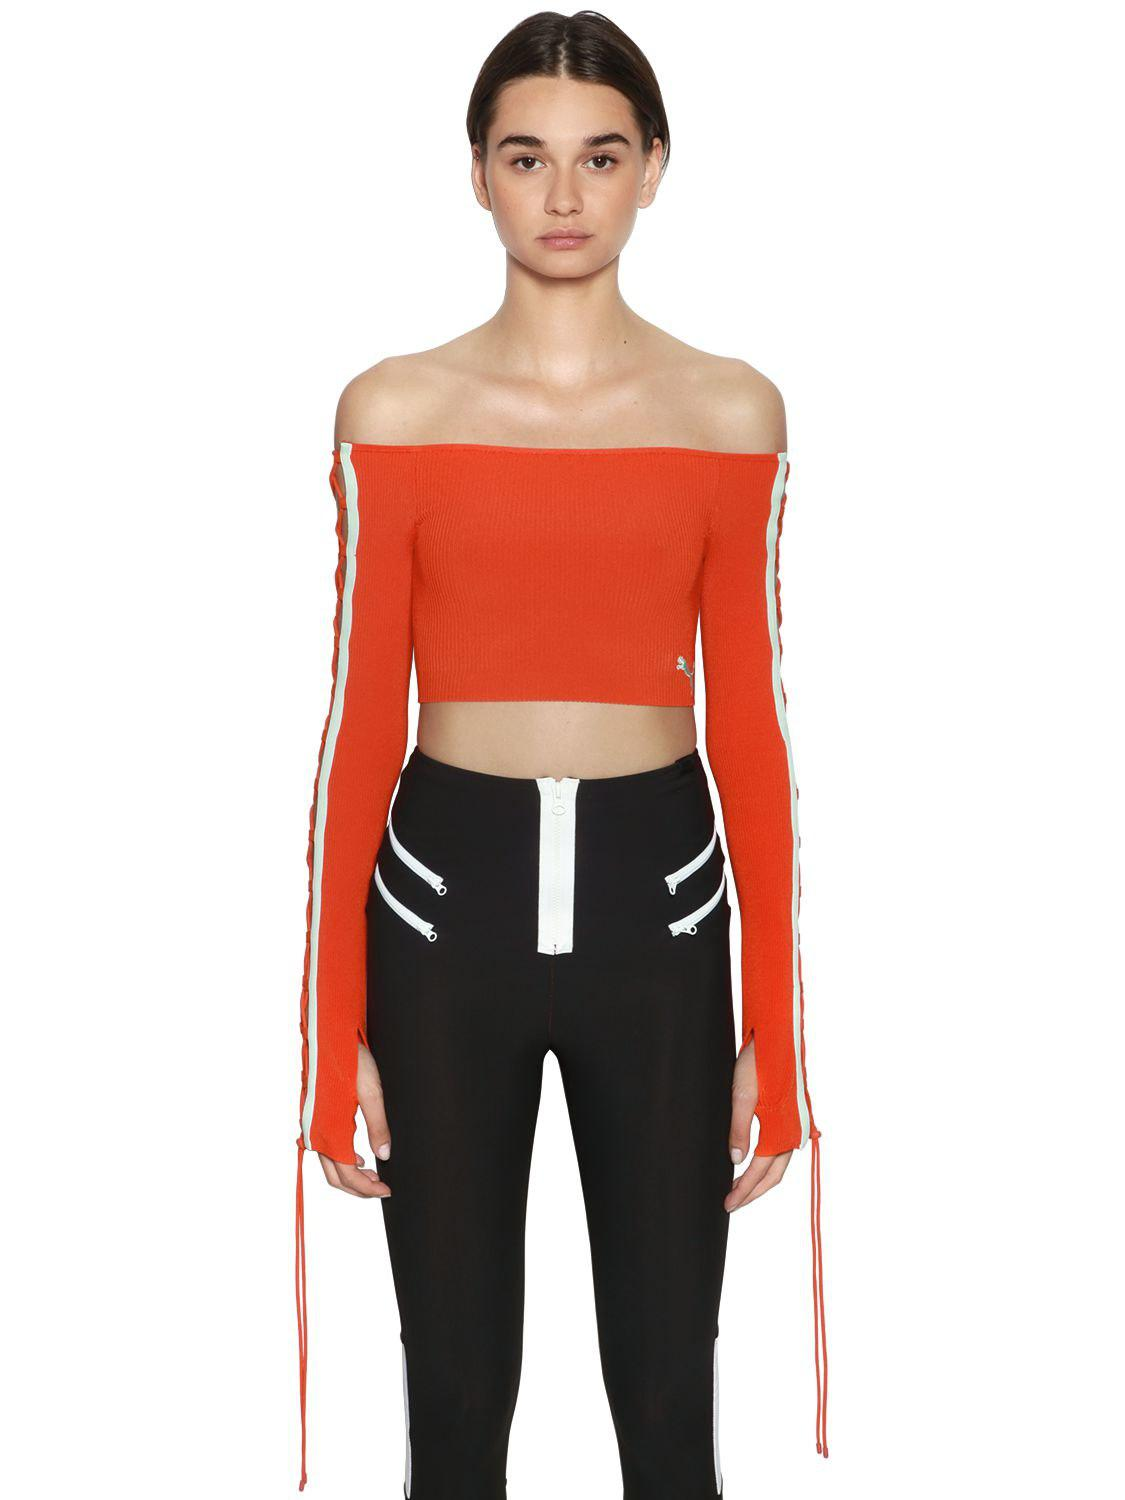 Lyst - PUMA Lace-up Rib Knit Cropped Top in Orange 3d595d995091d